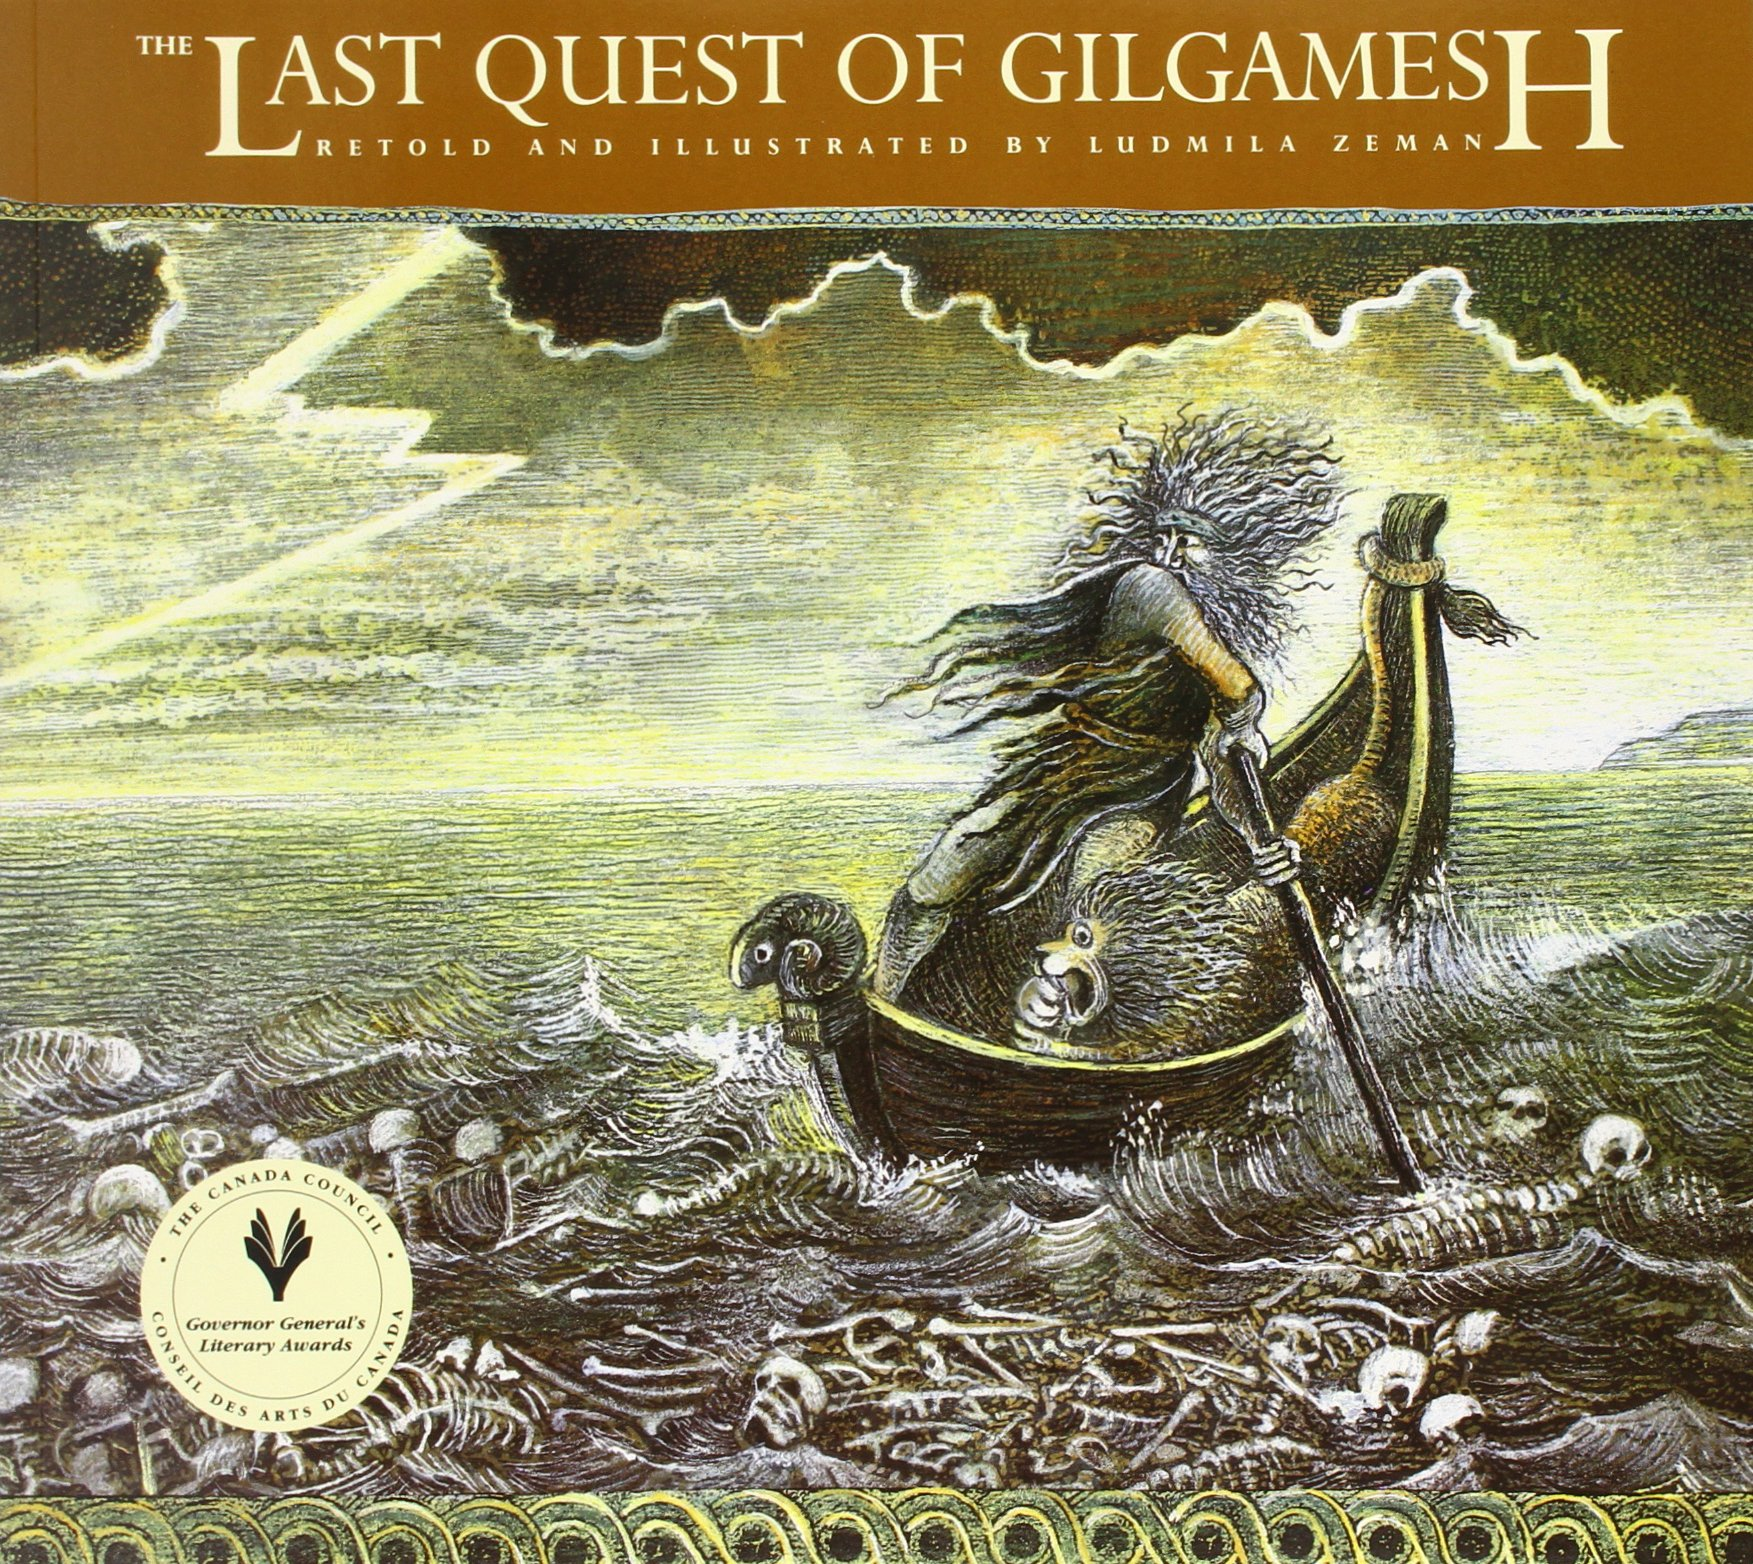 gilgameshs quest for immortality and the The epic of gilgamesh study guide contains literature essays siduri implores gilgamesh to abandon his quest and partake in the joys of life instead death and immortality in the epic of gilgamesh.